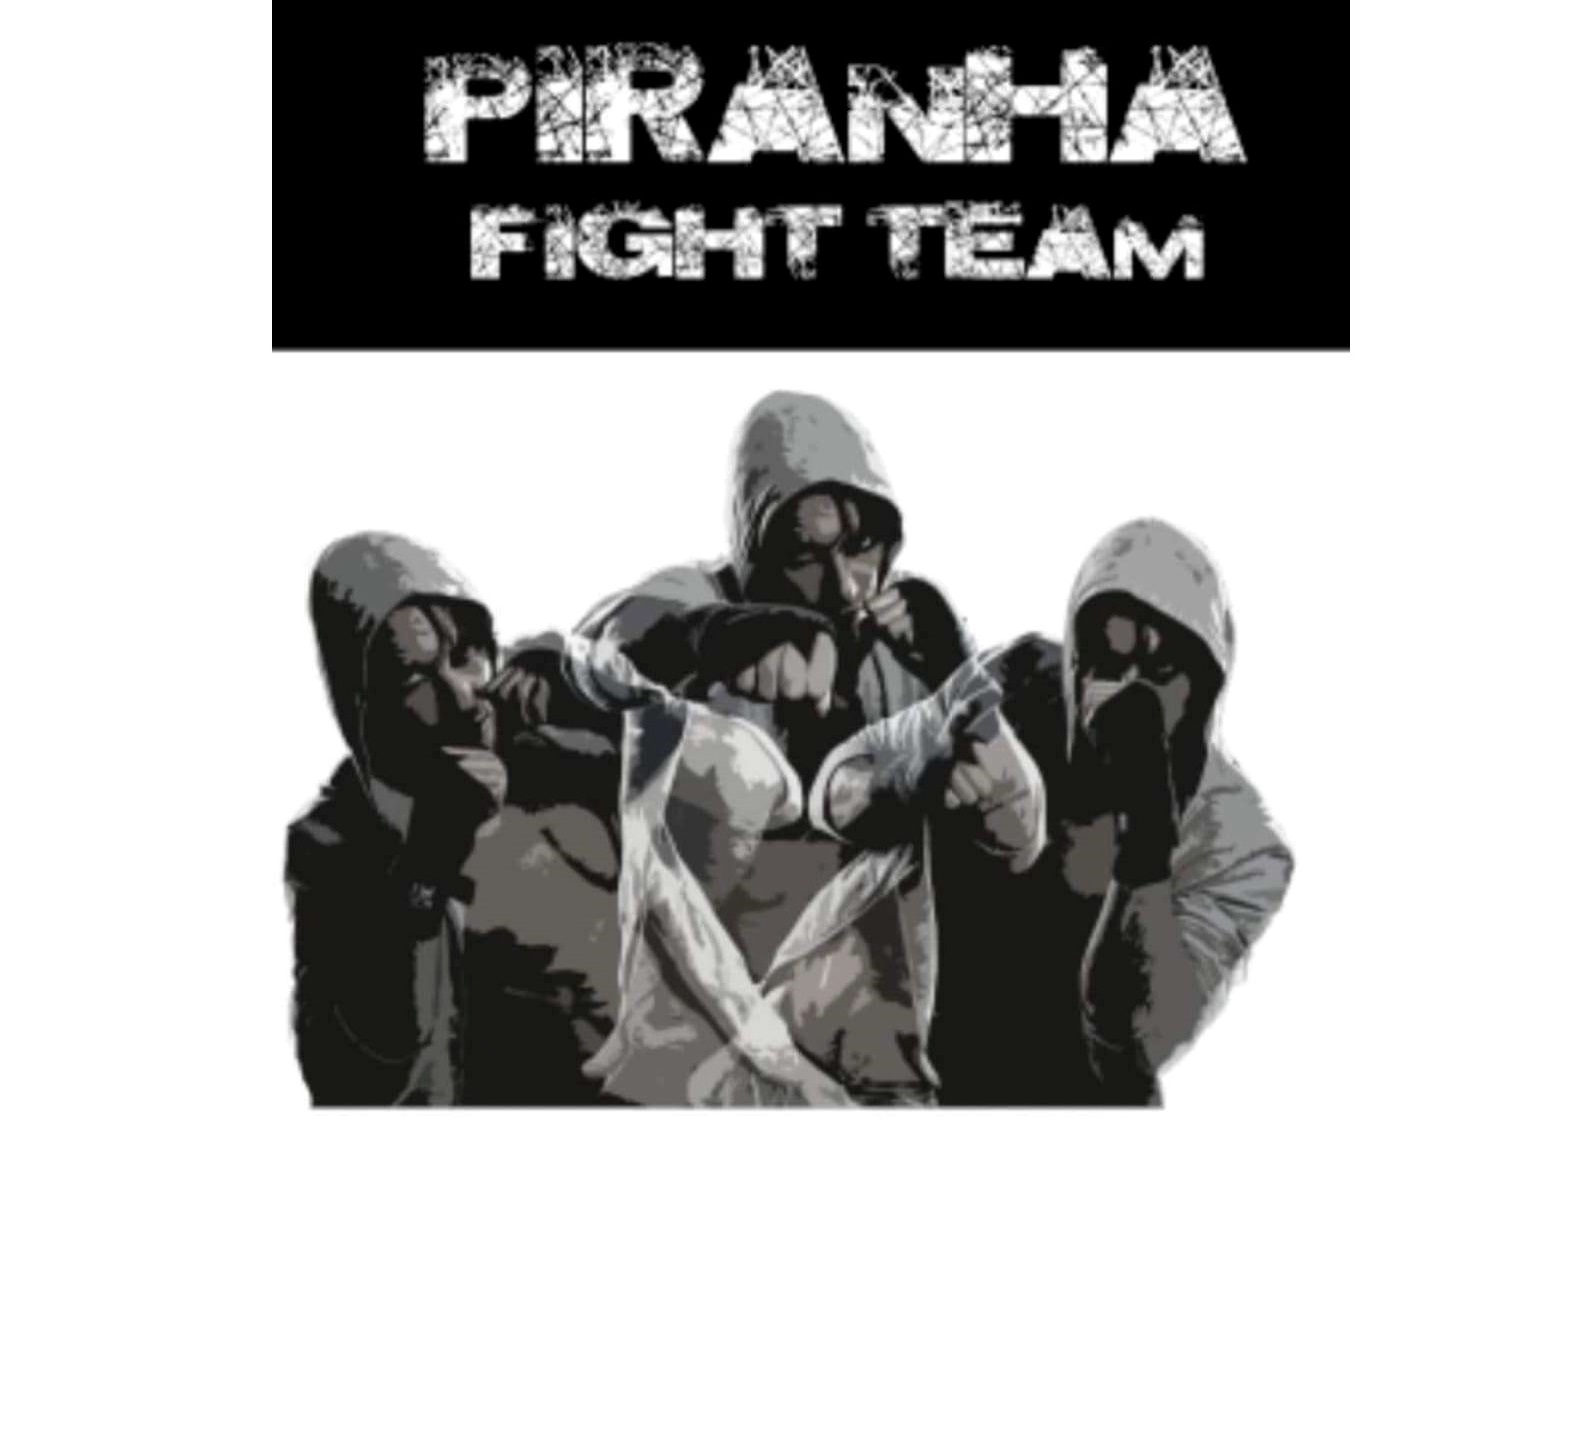 Piranha team